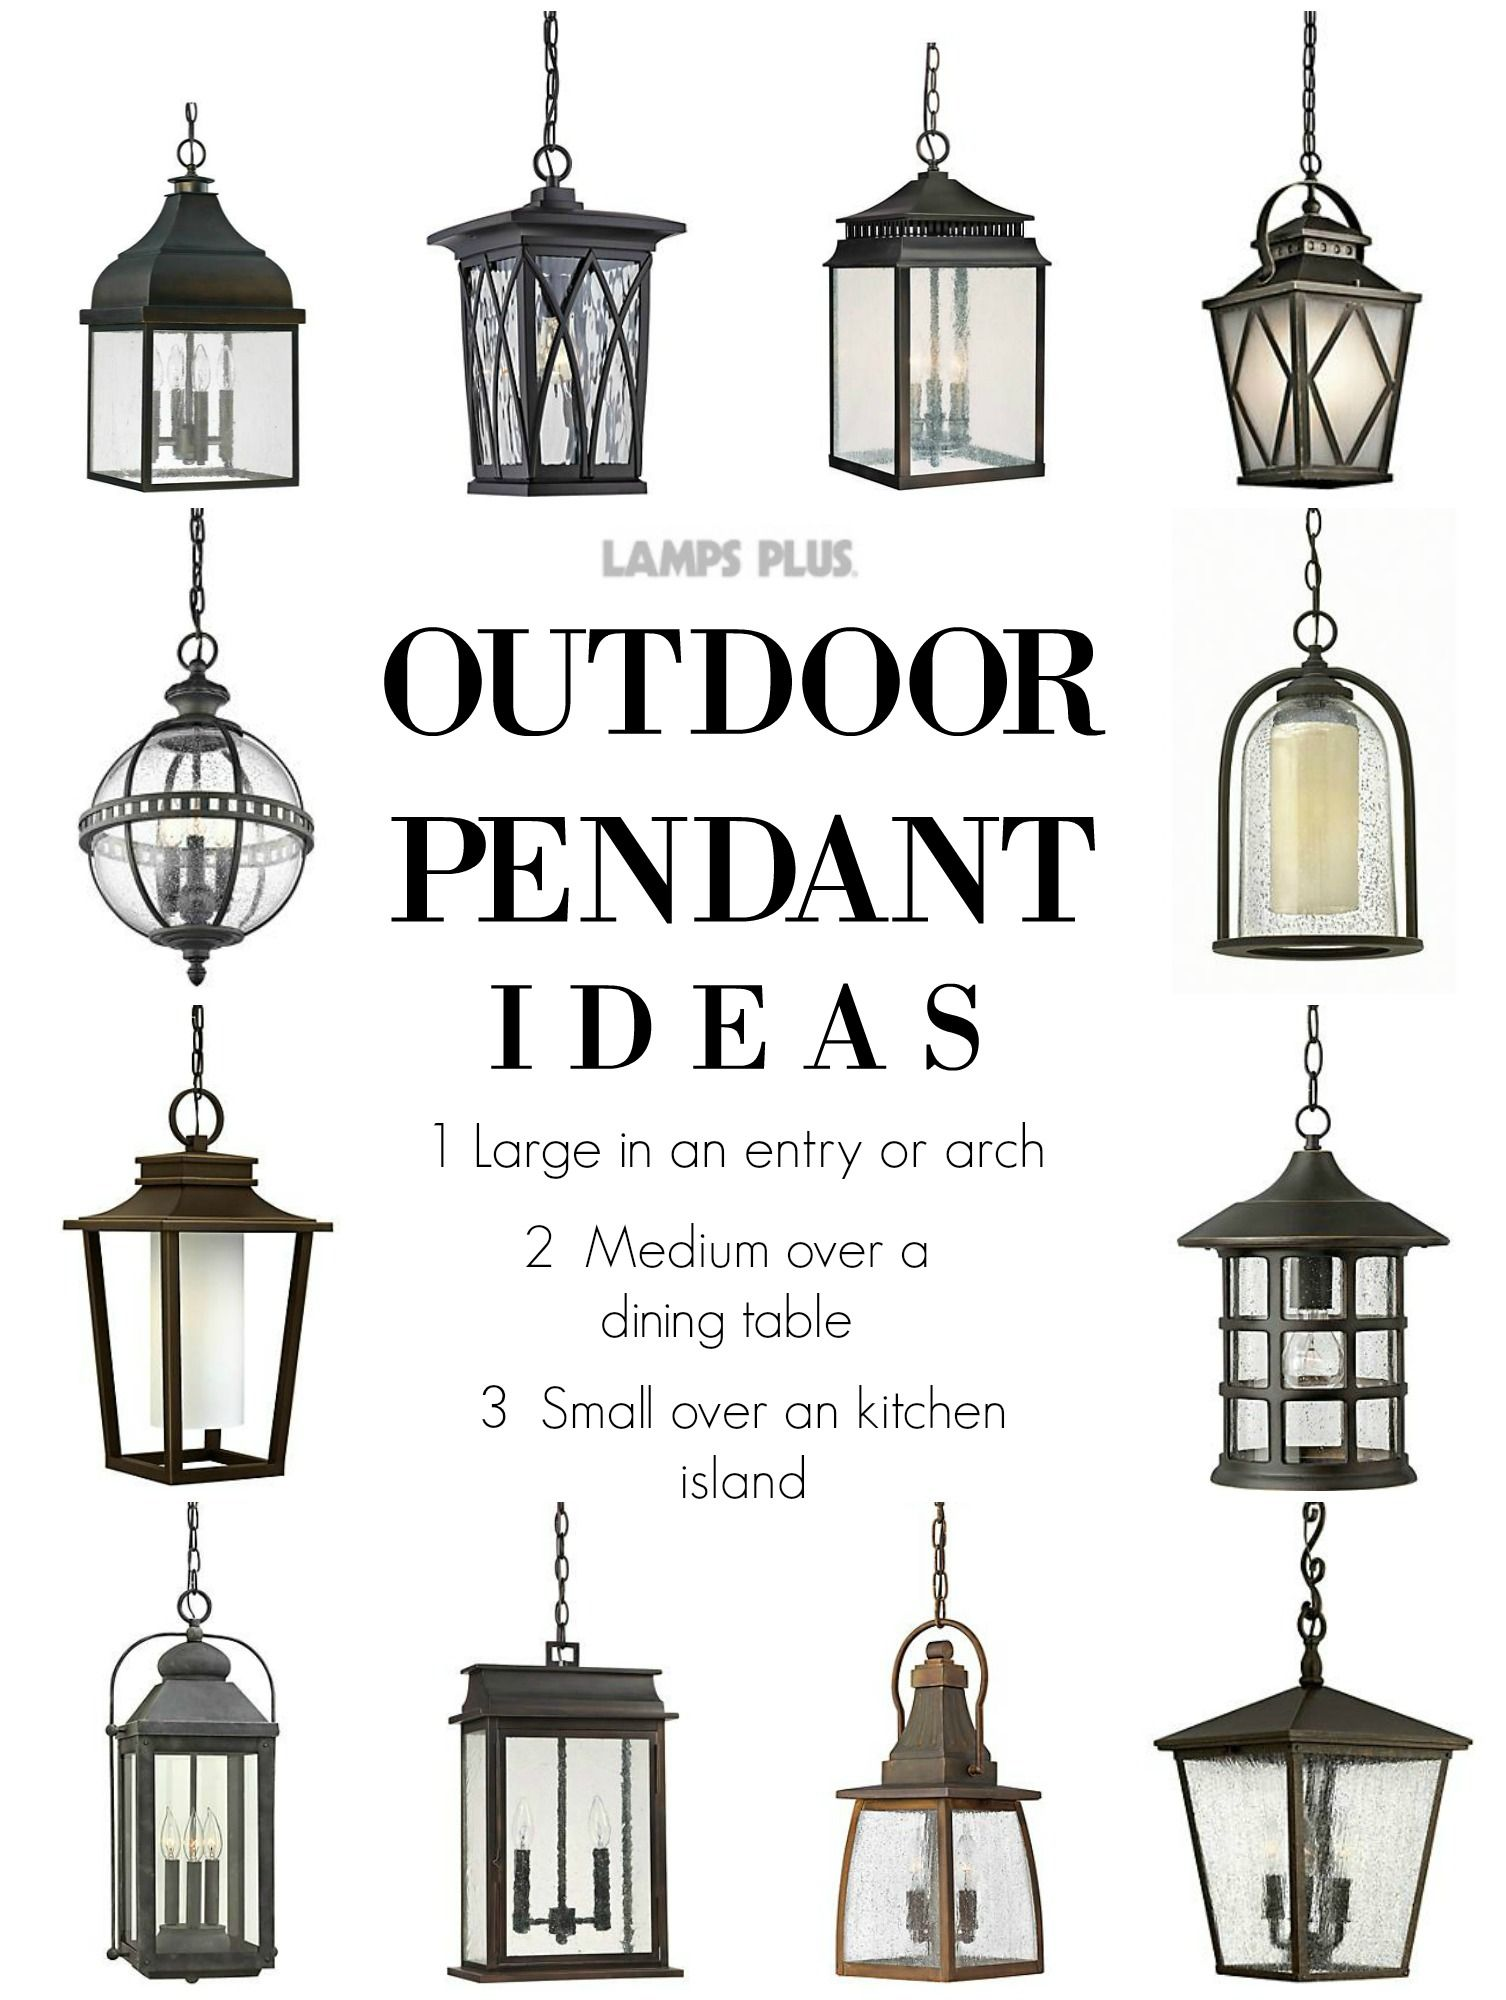 outdoor pendant lights for porch # 6